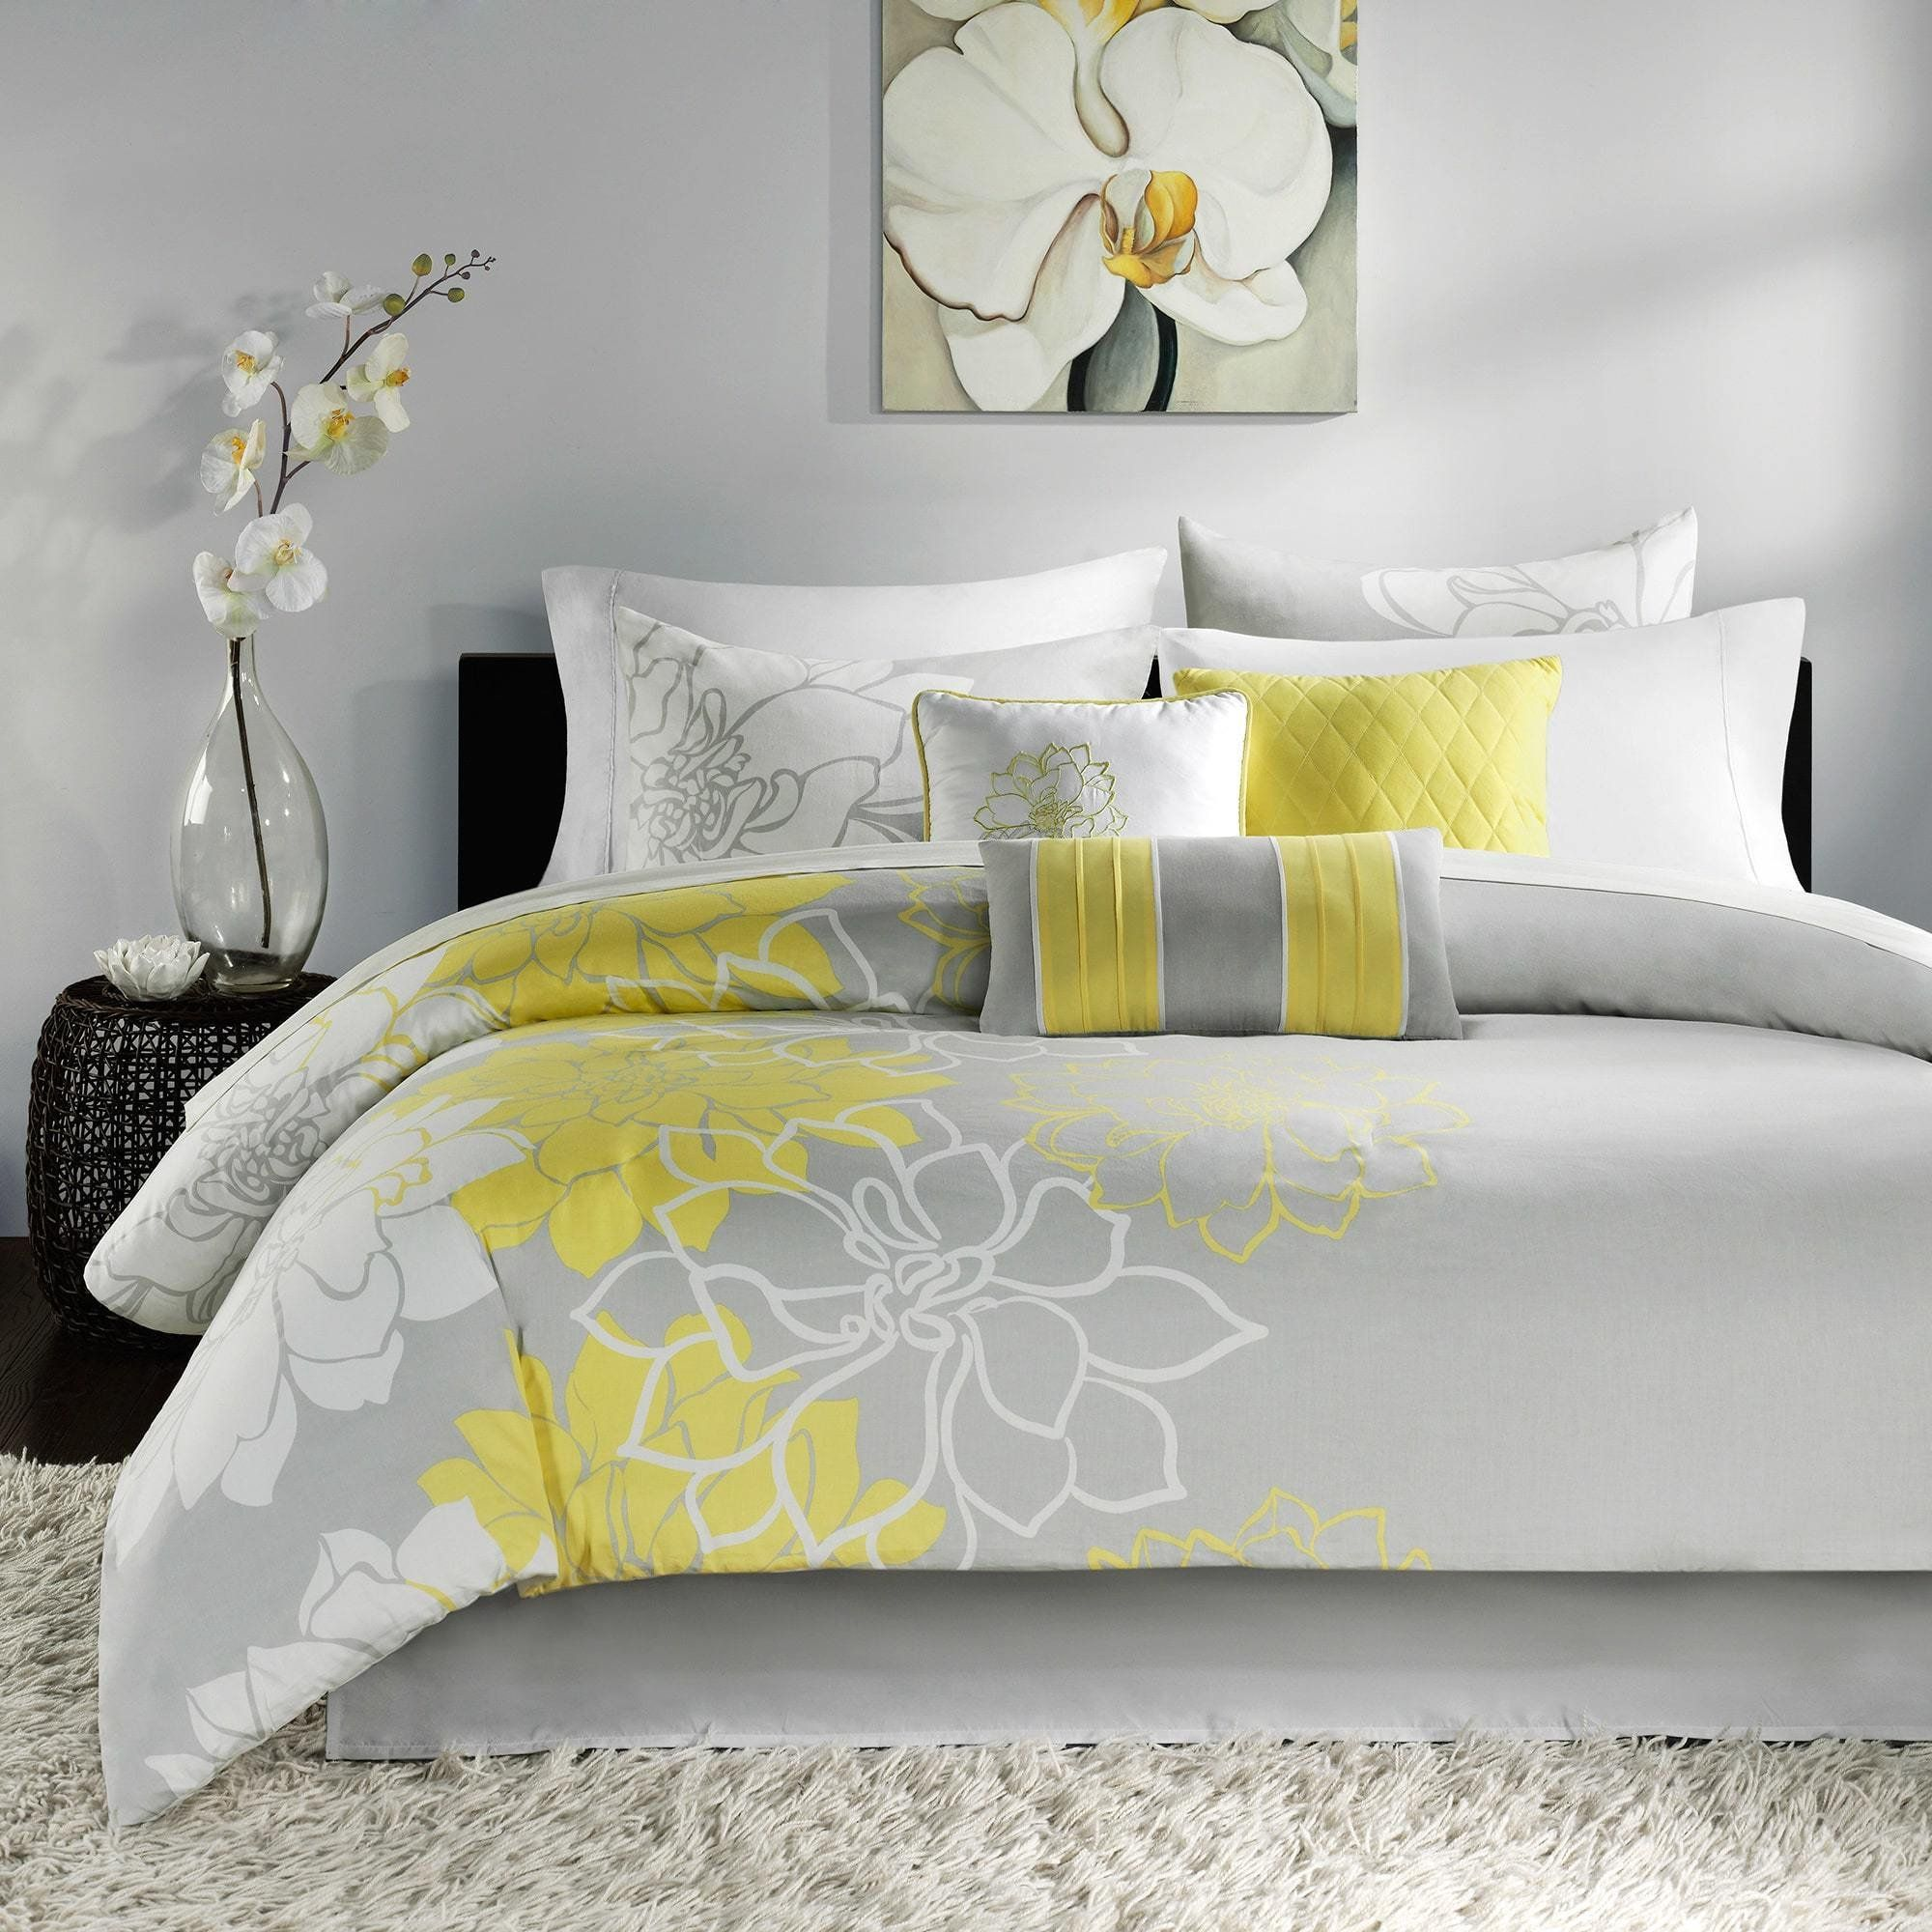 7 Piece Yellow Floral King Size Comforter Setbeautiful Grey Vibrant Flowers Nature Gray Lily Spring Flower Comforter Sets Duvet Cover Sets King Comforter Sets